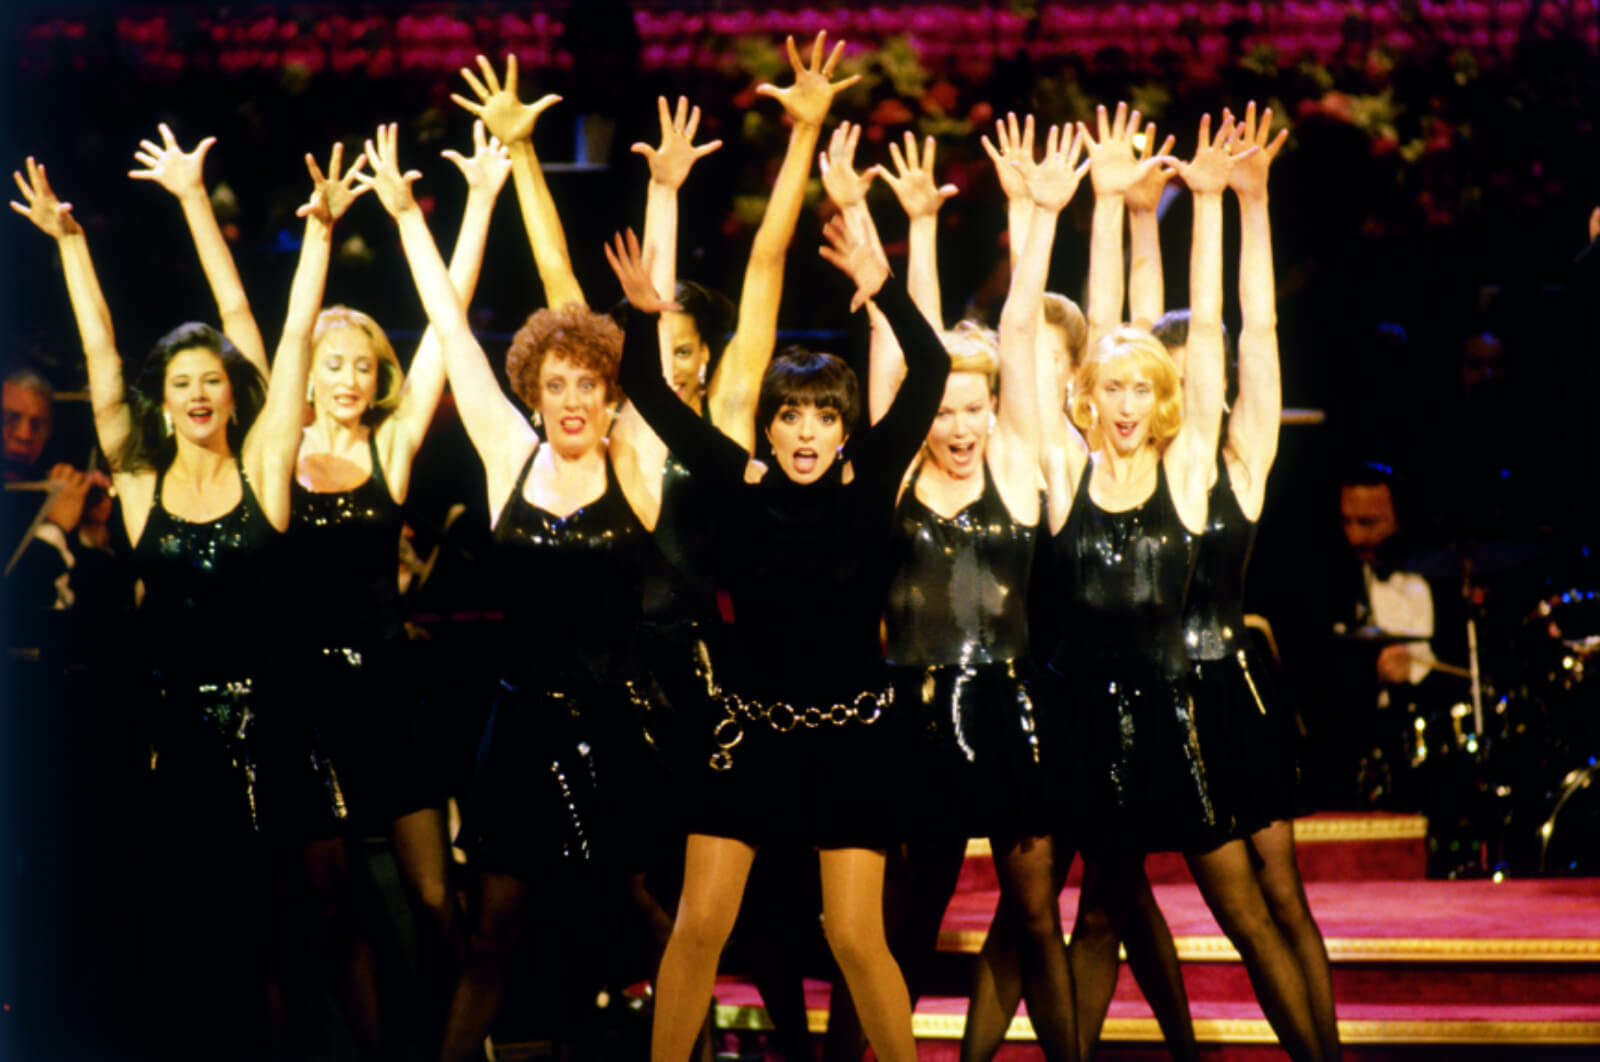 Liza Minnelli and her backup dancers in an all-black attire, dancing with arms up in the air.